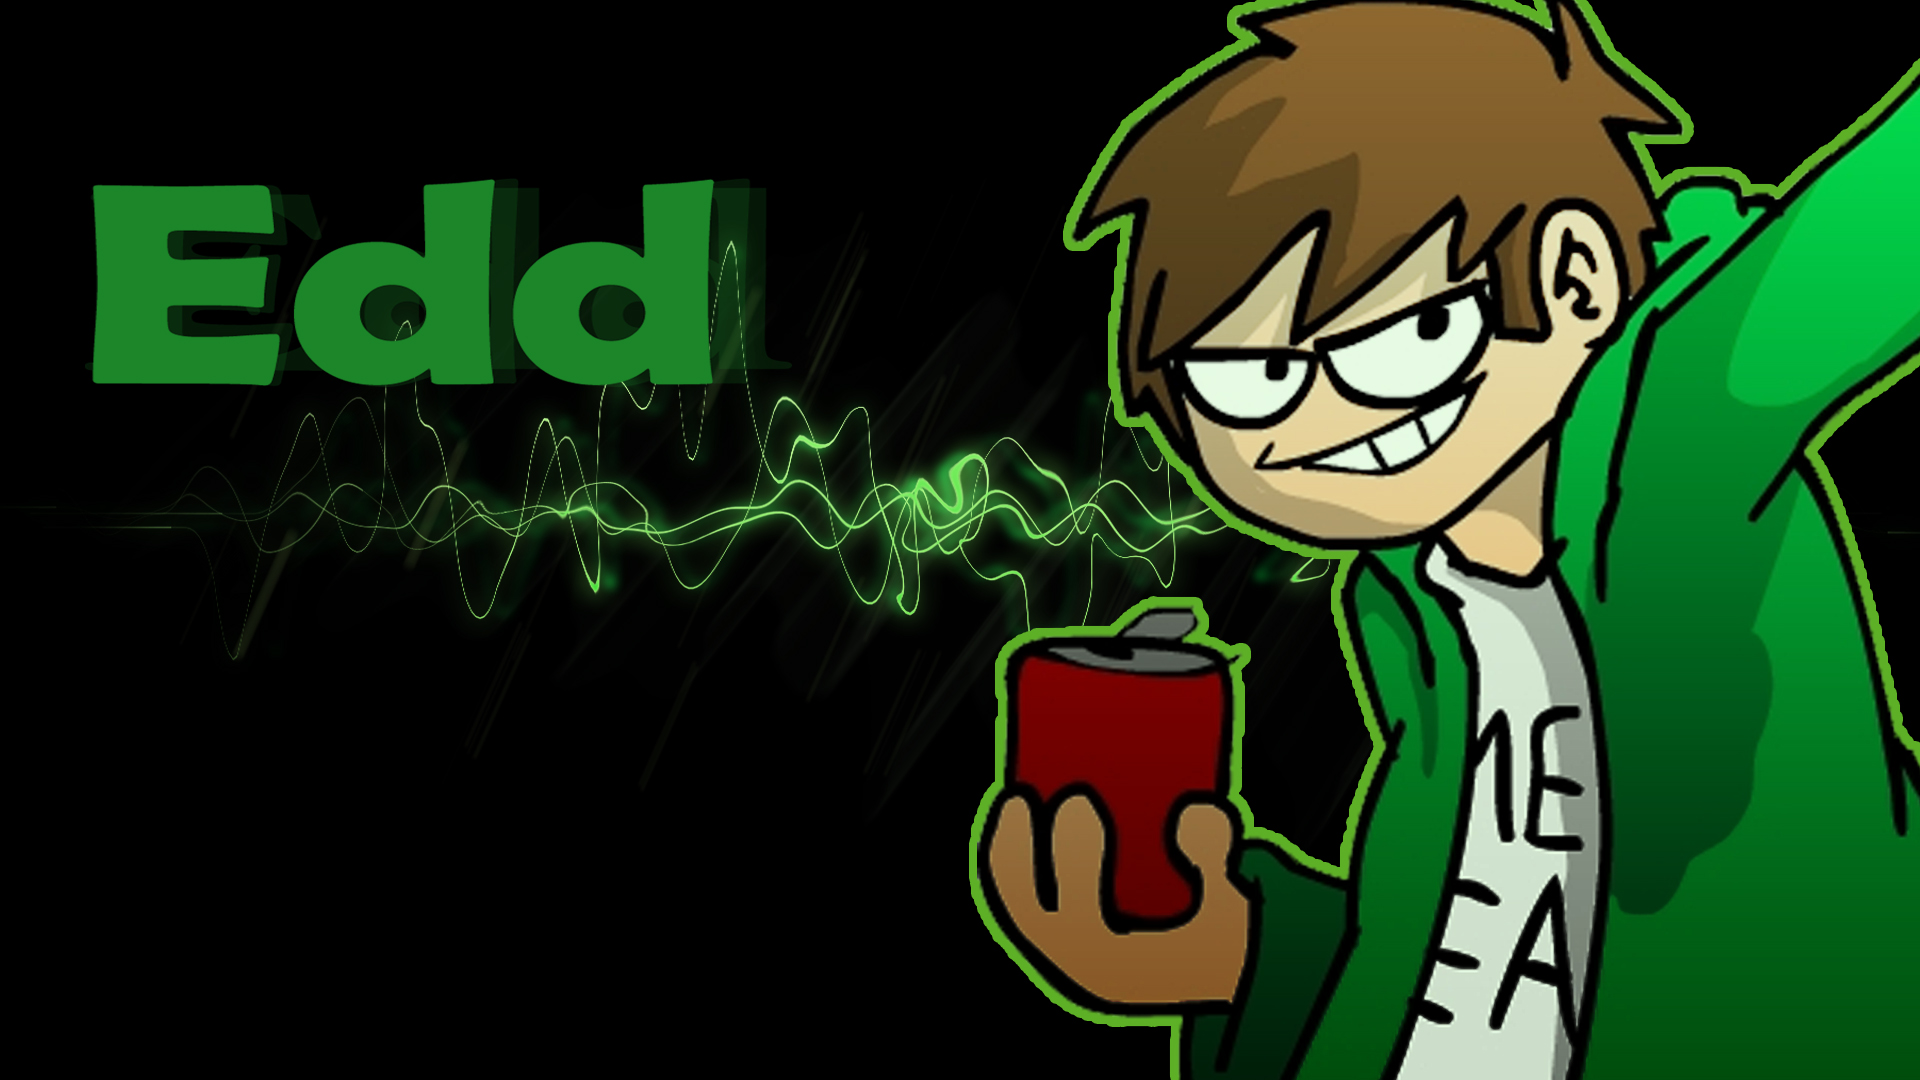 eddsworld images wallpaper and - photo #36